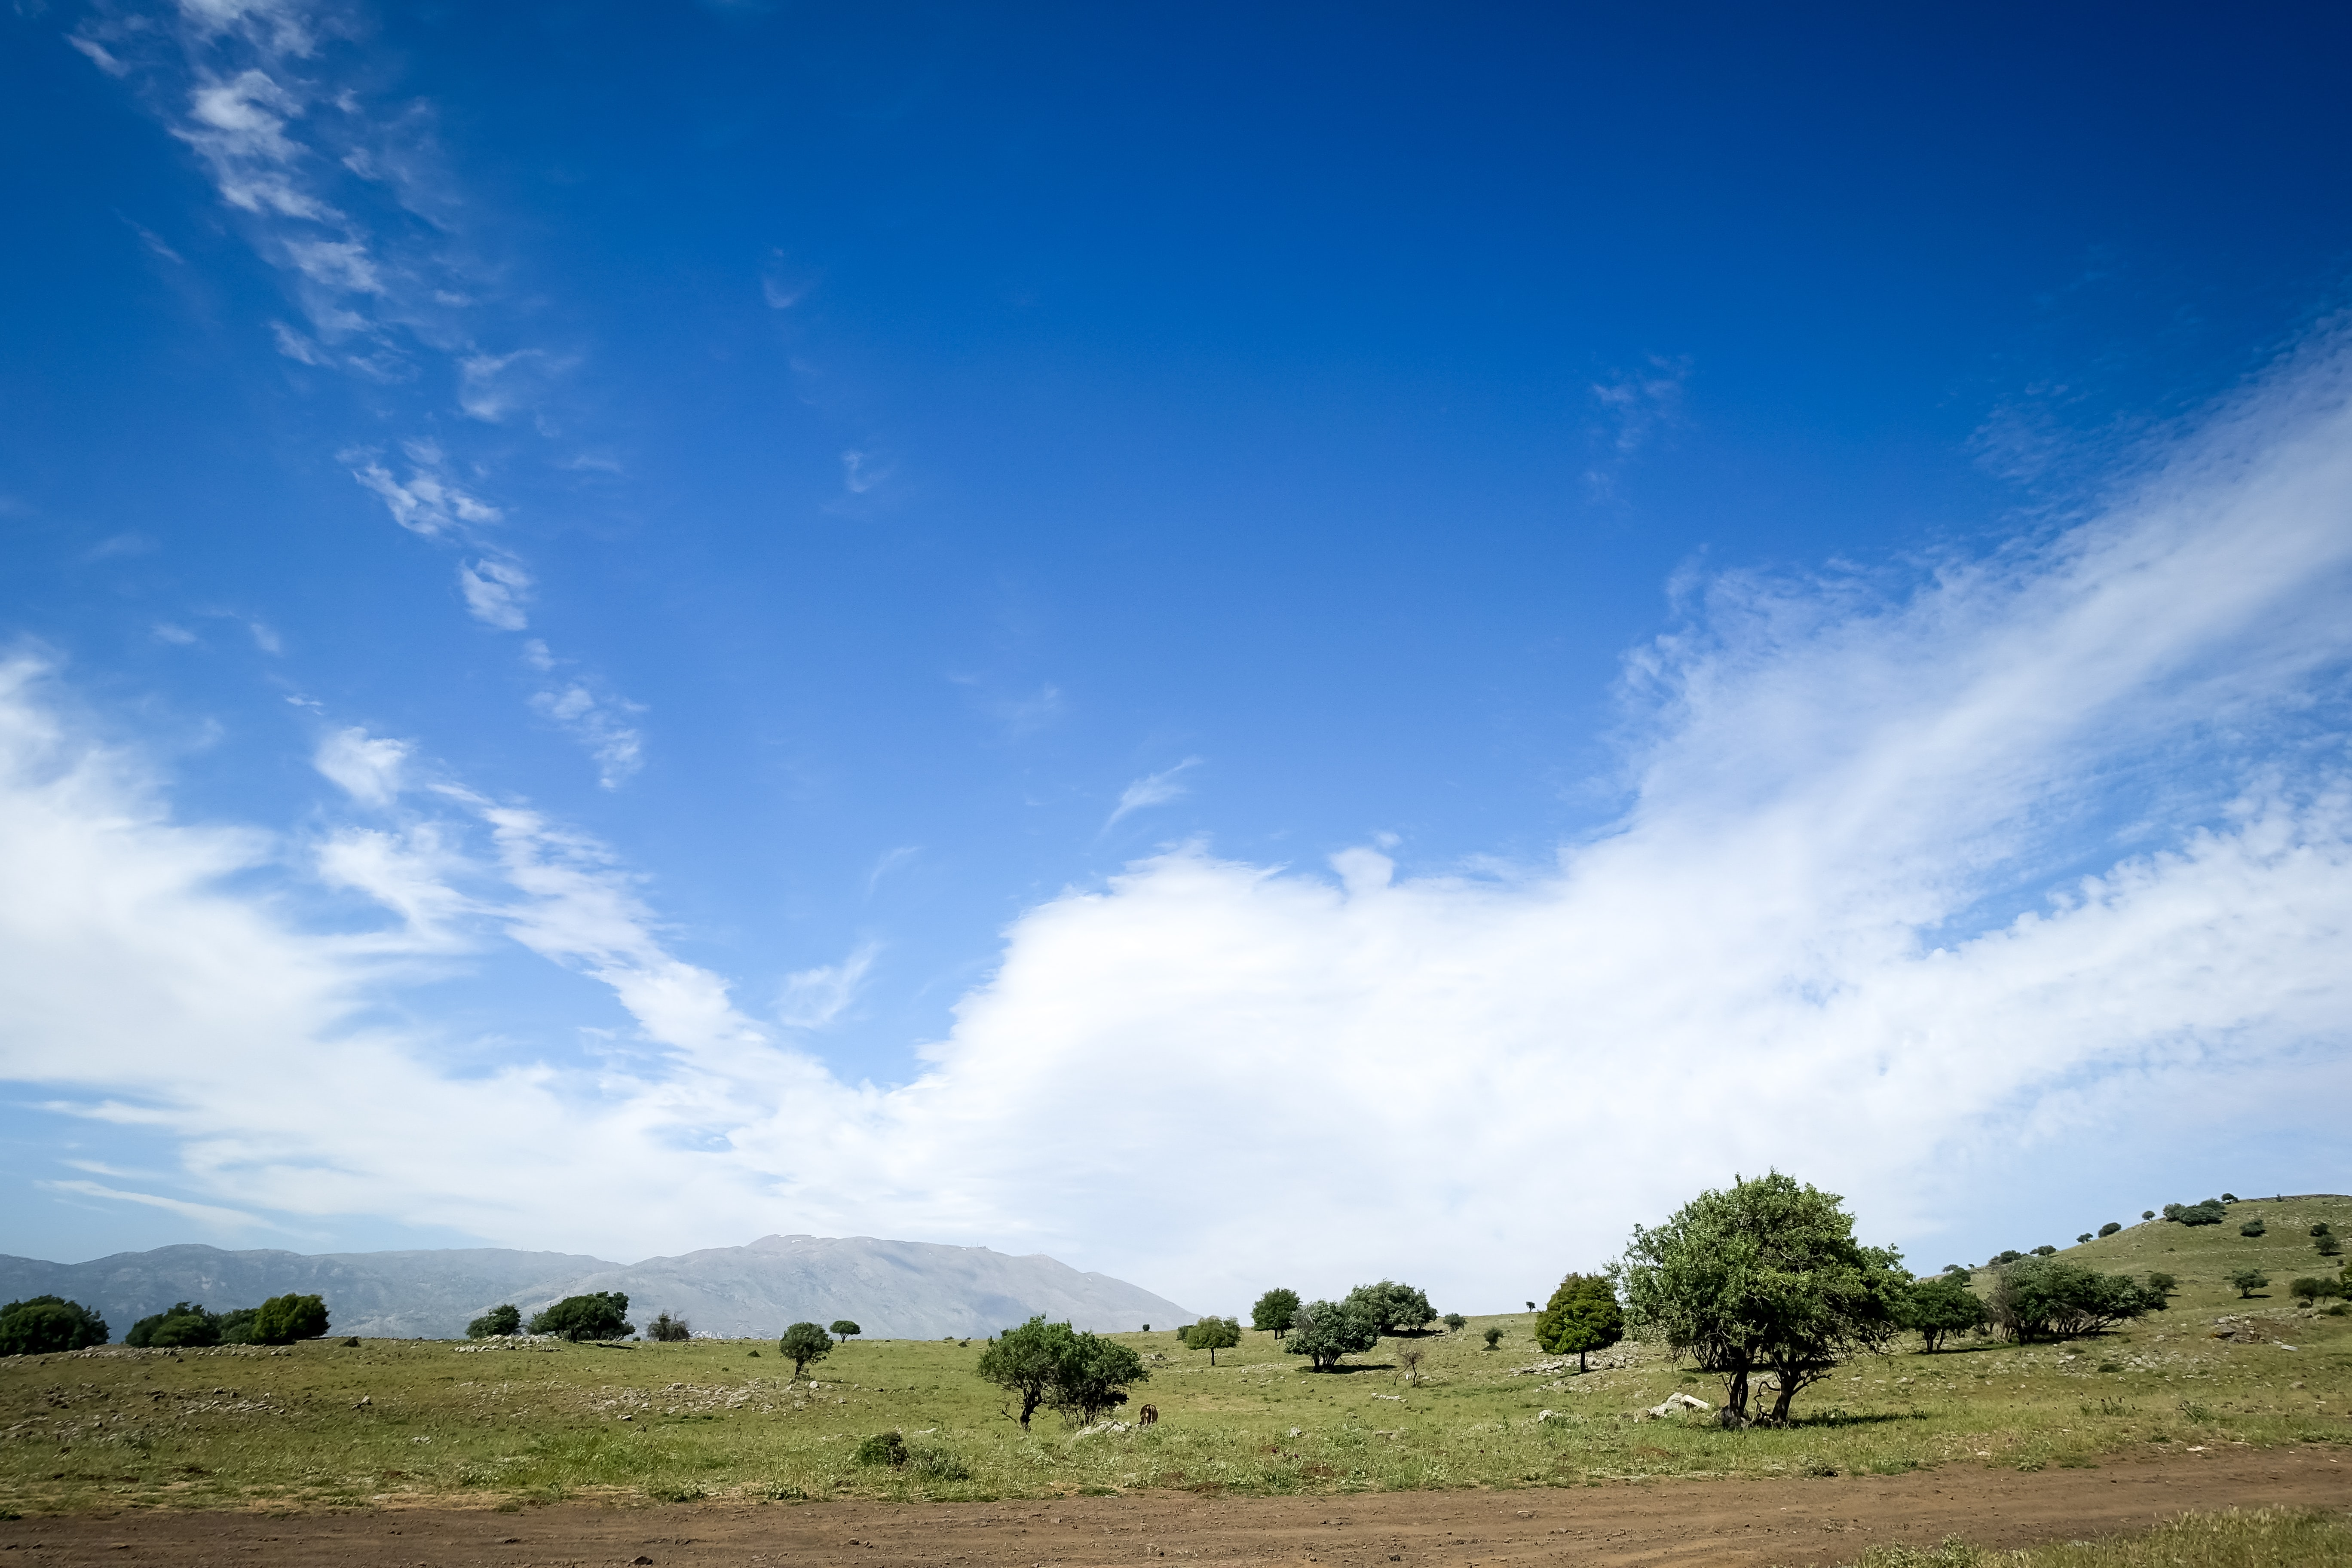 green trees near mountain under blue sky at daytime